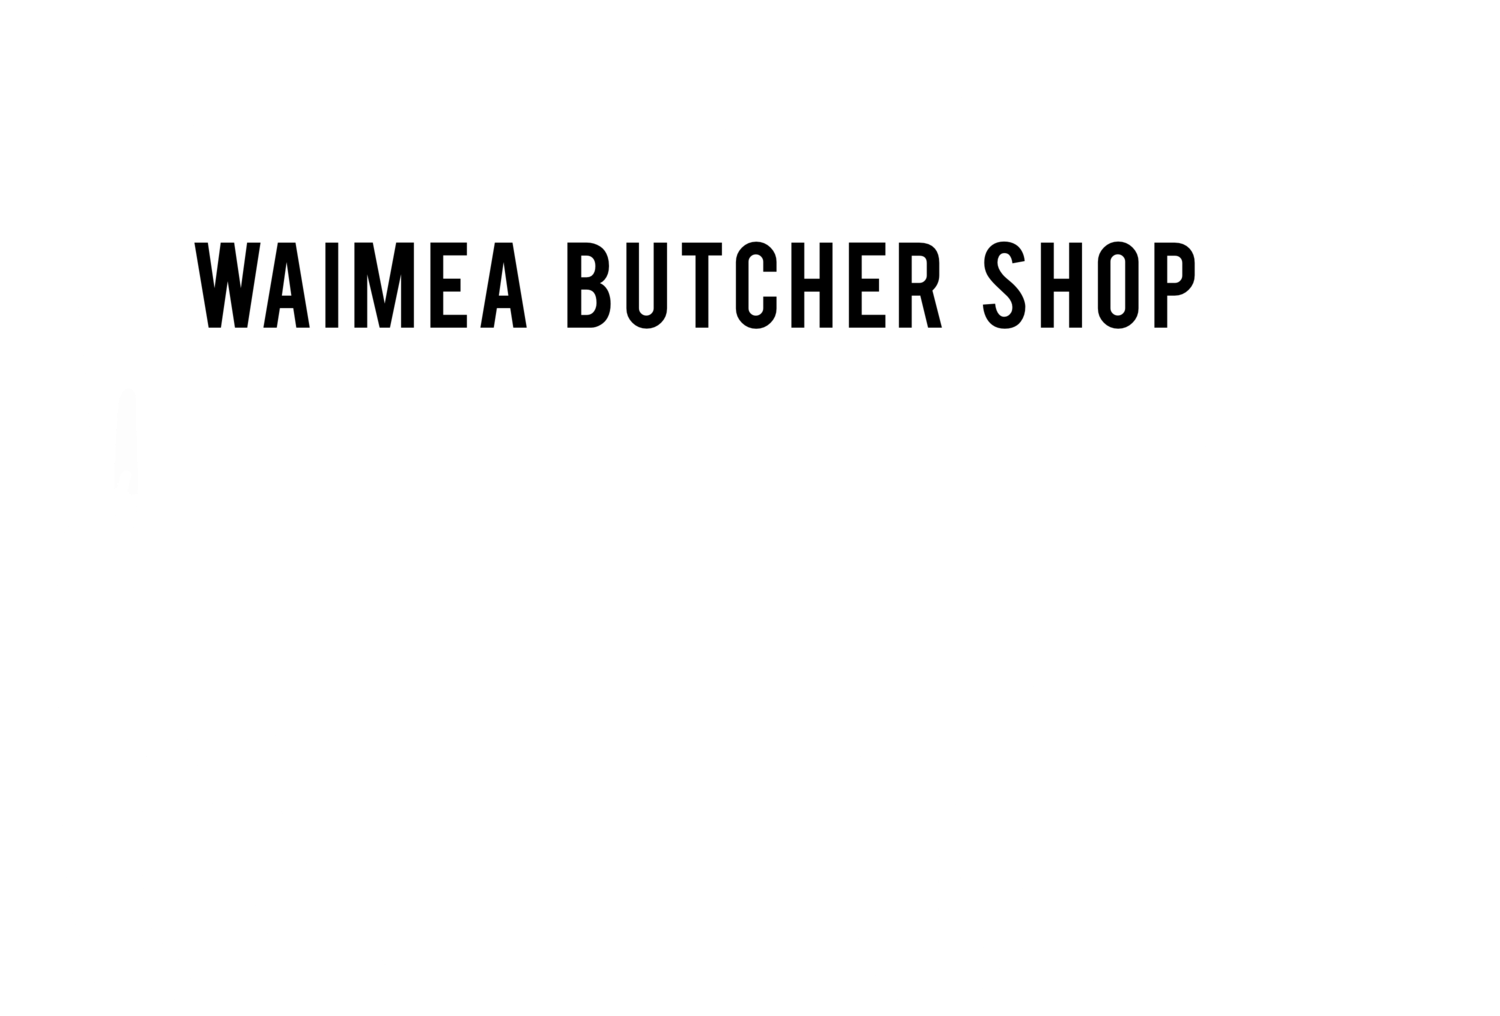 Waimea Butcher Shop